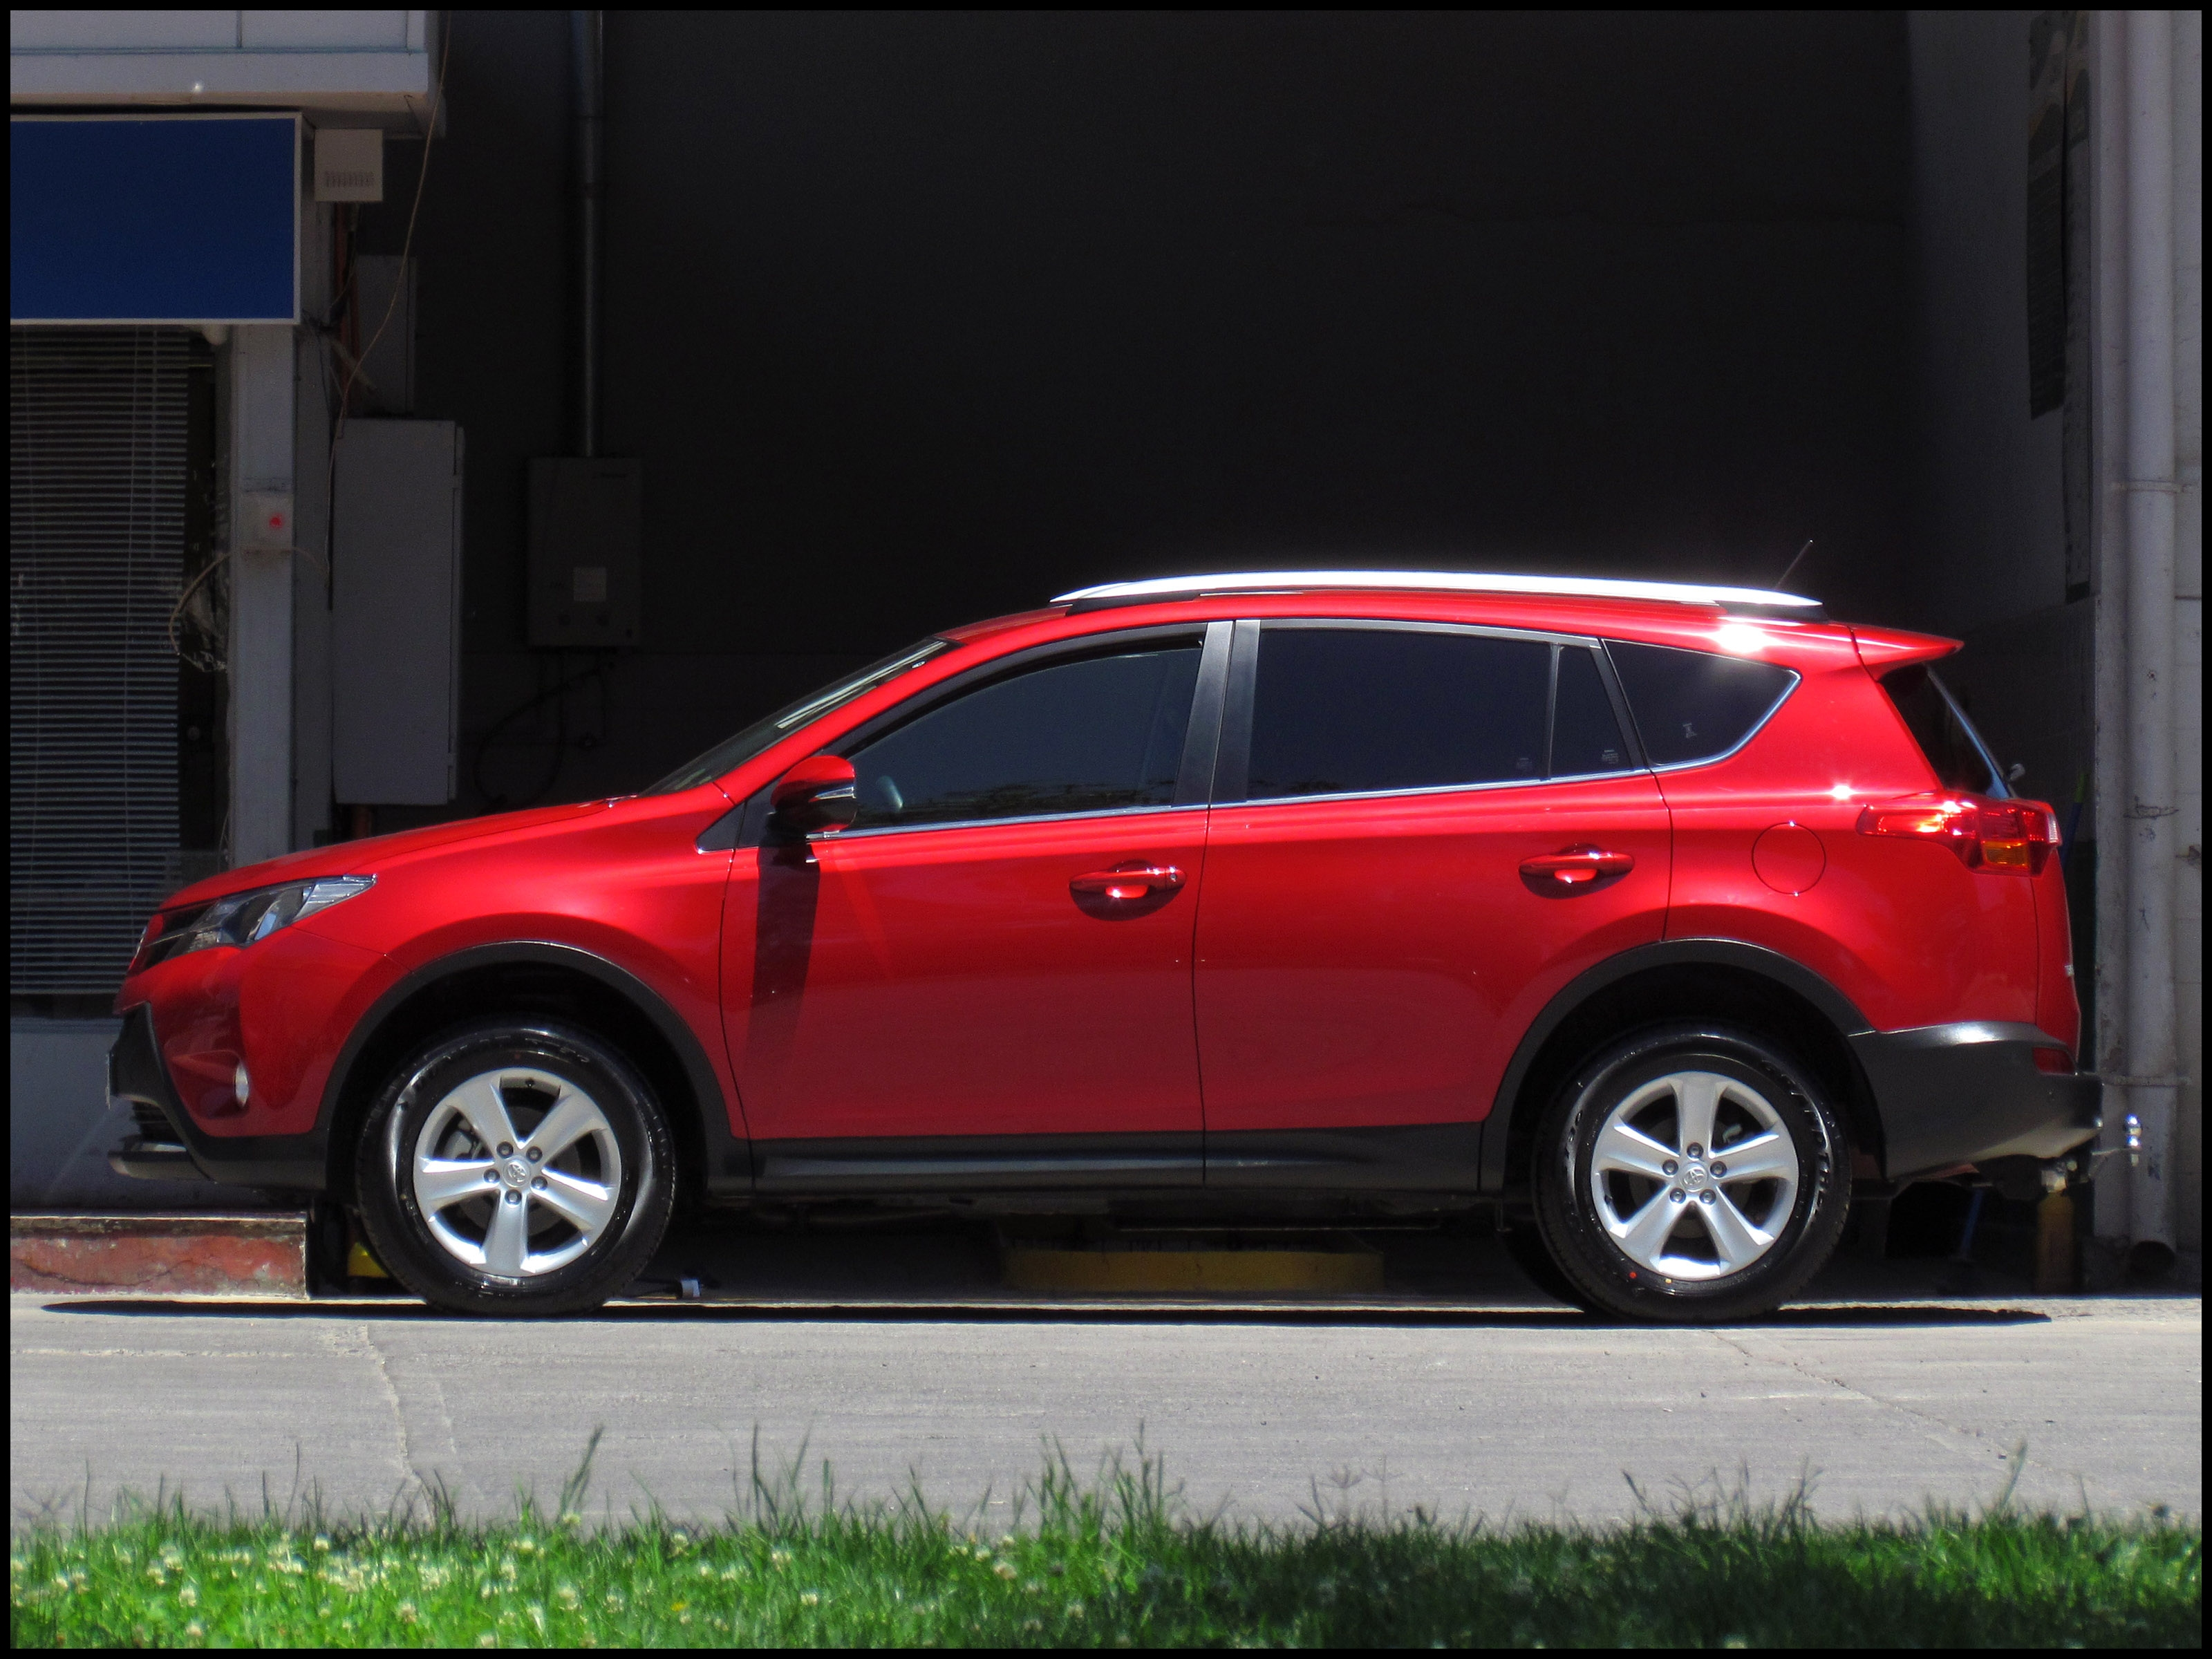 News Rav 4 Logo toyota Rav4 Interior Awesome toyota Rav4 2 0d 150d 2wd Review